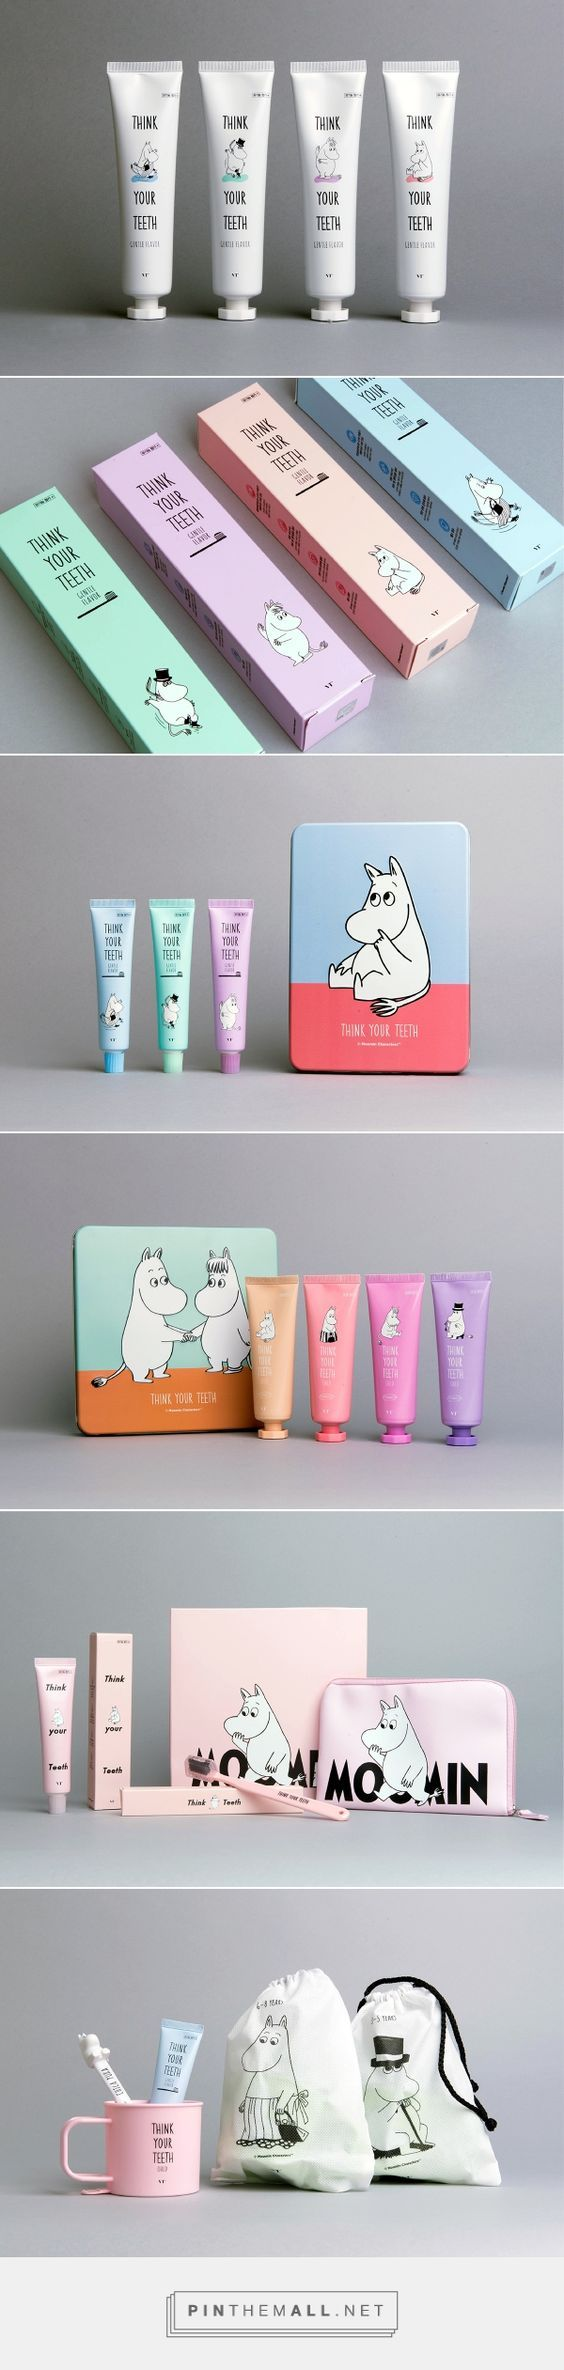 Toothpaste Branding | Cute Branding and Packaging